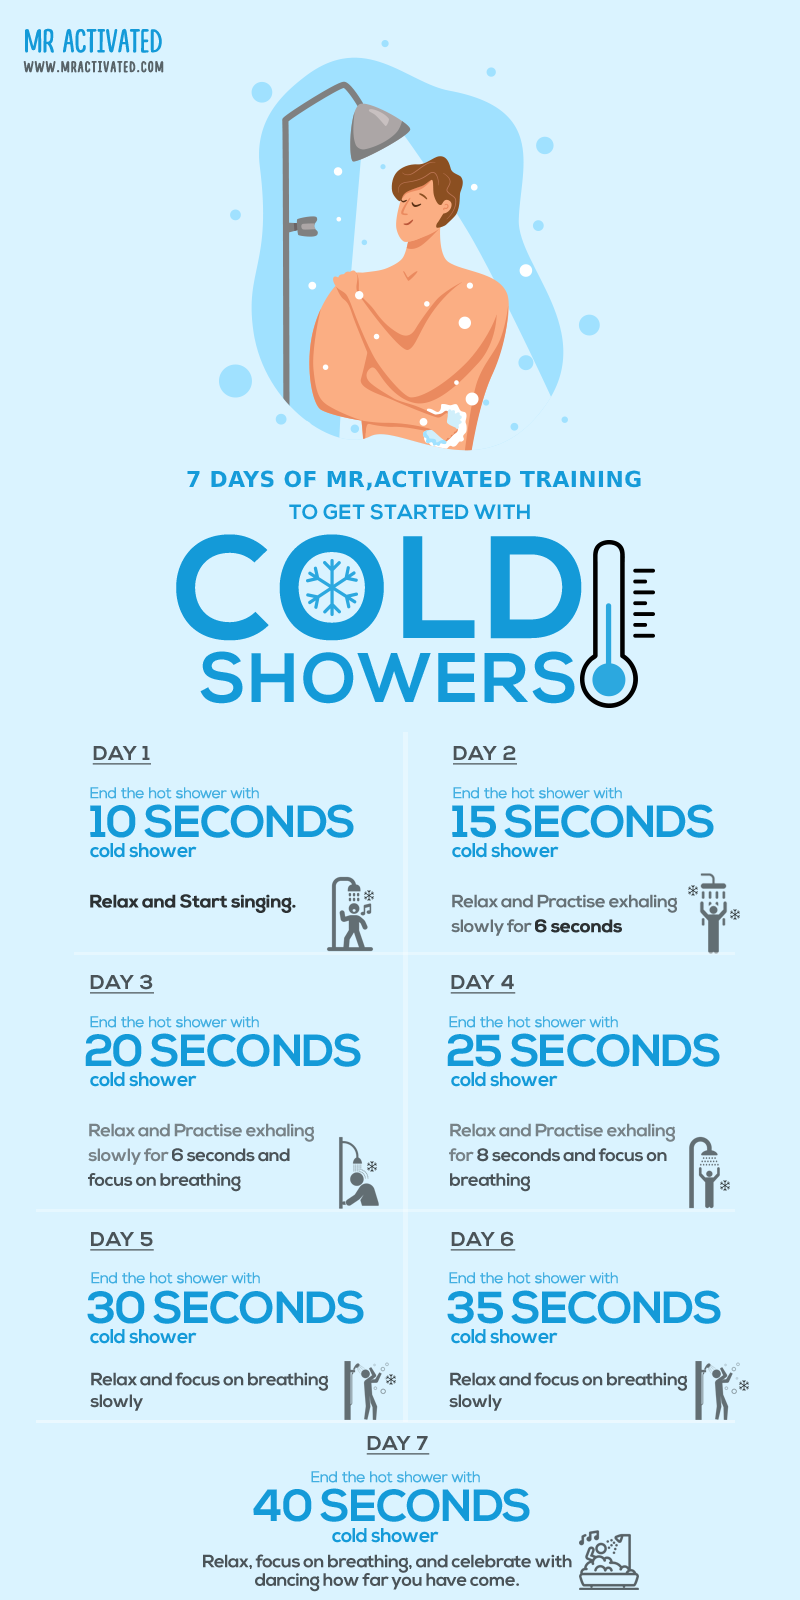 Cold Shower Training and Benefits